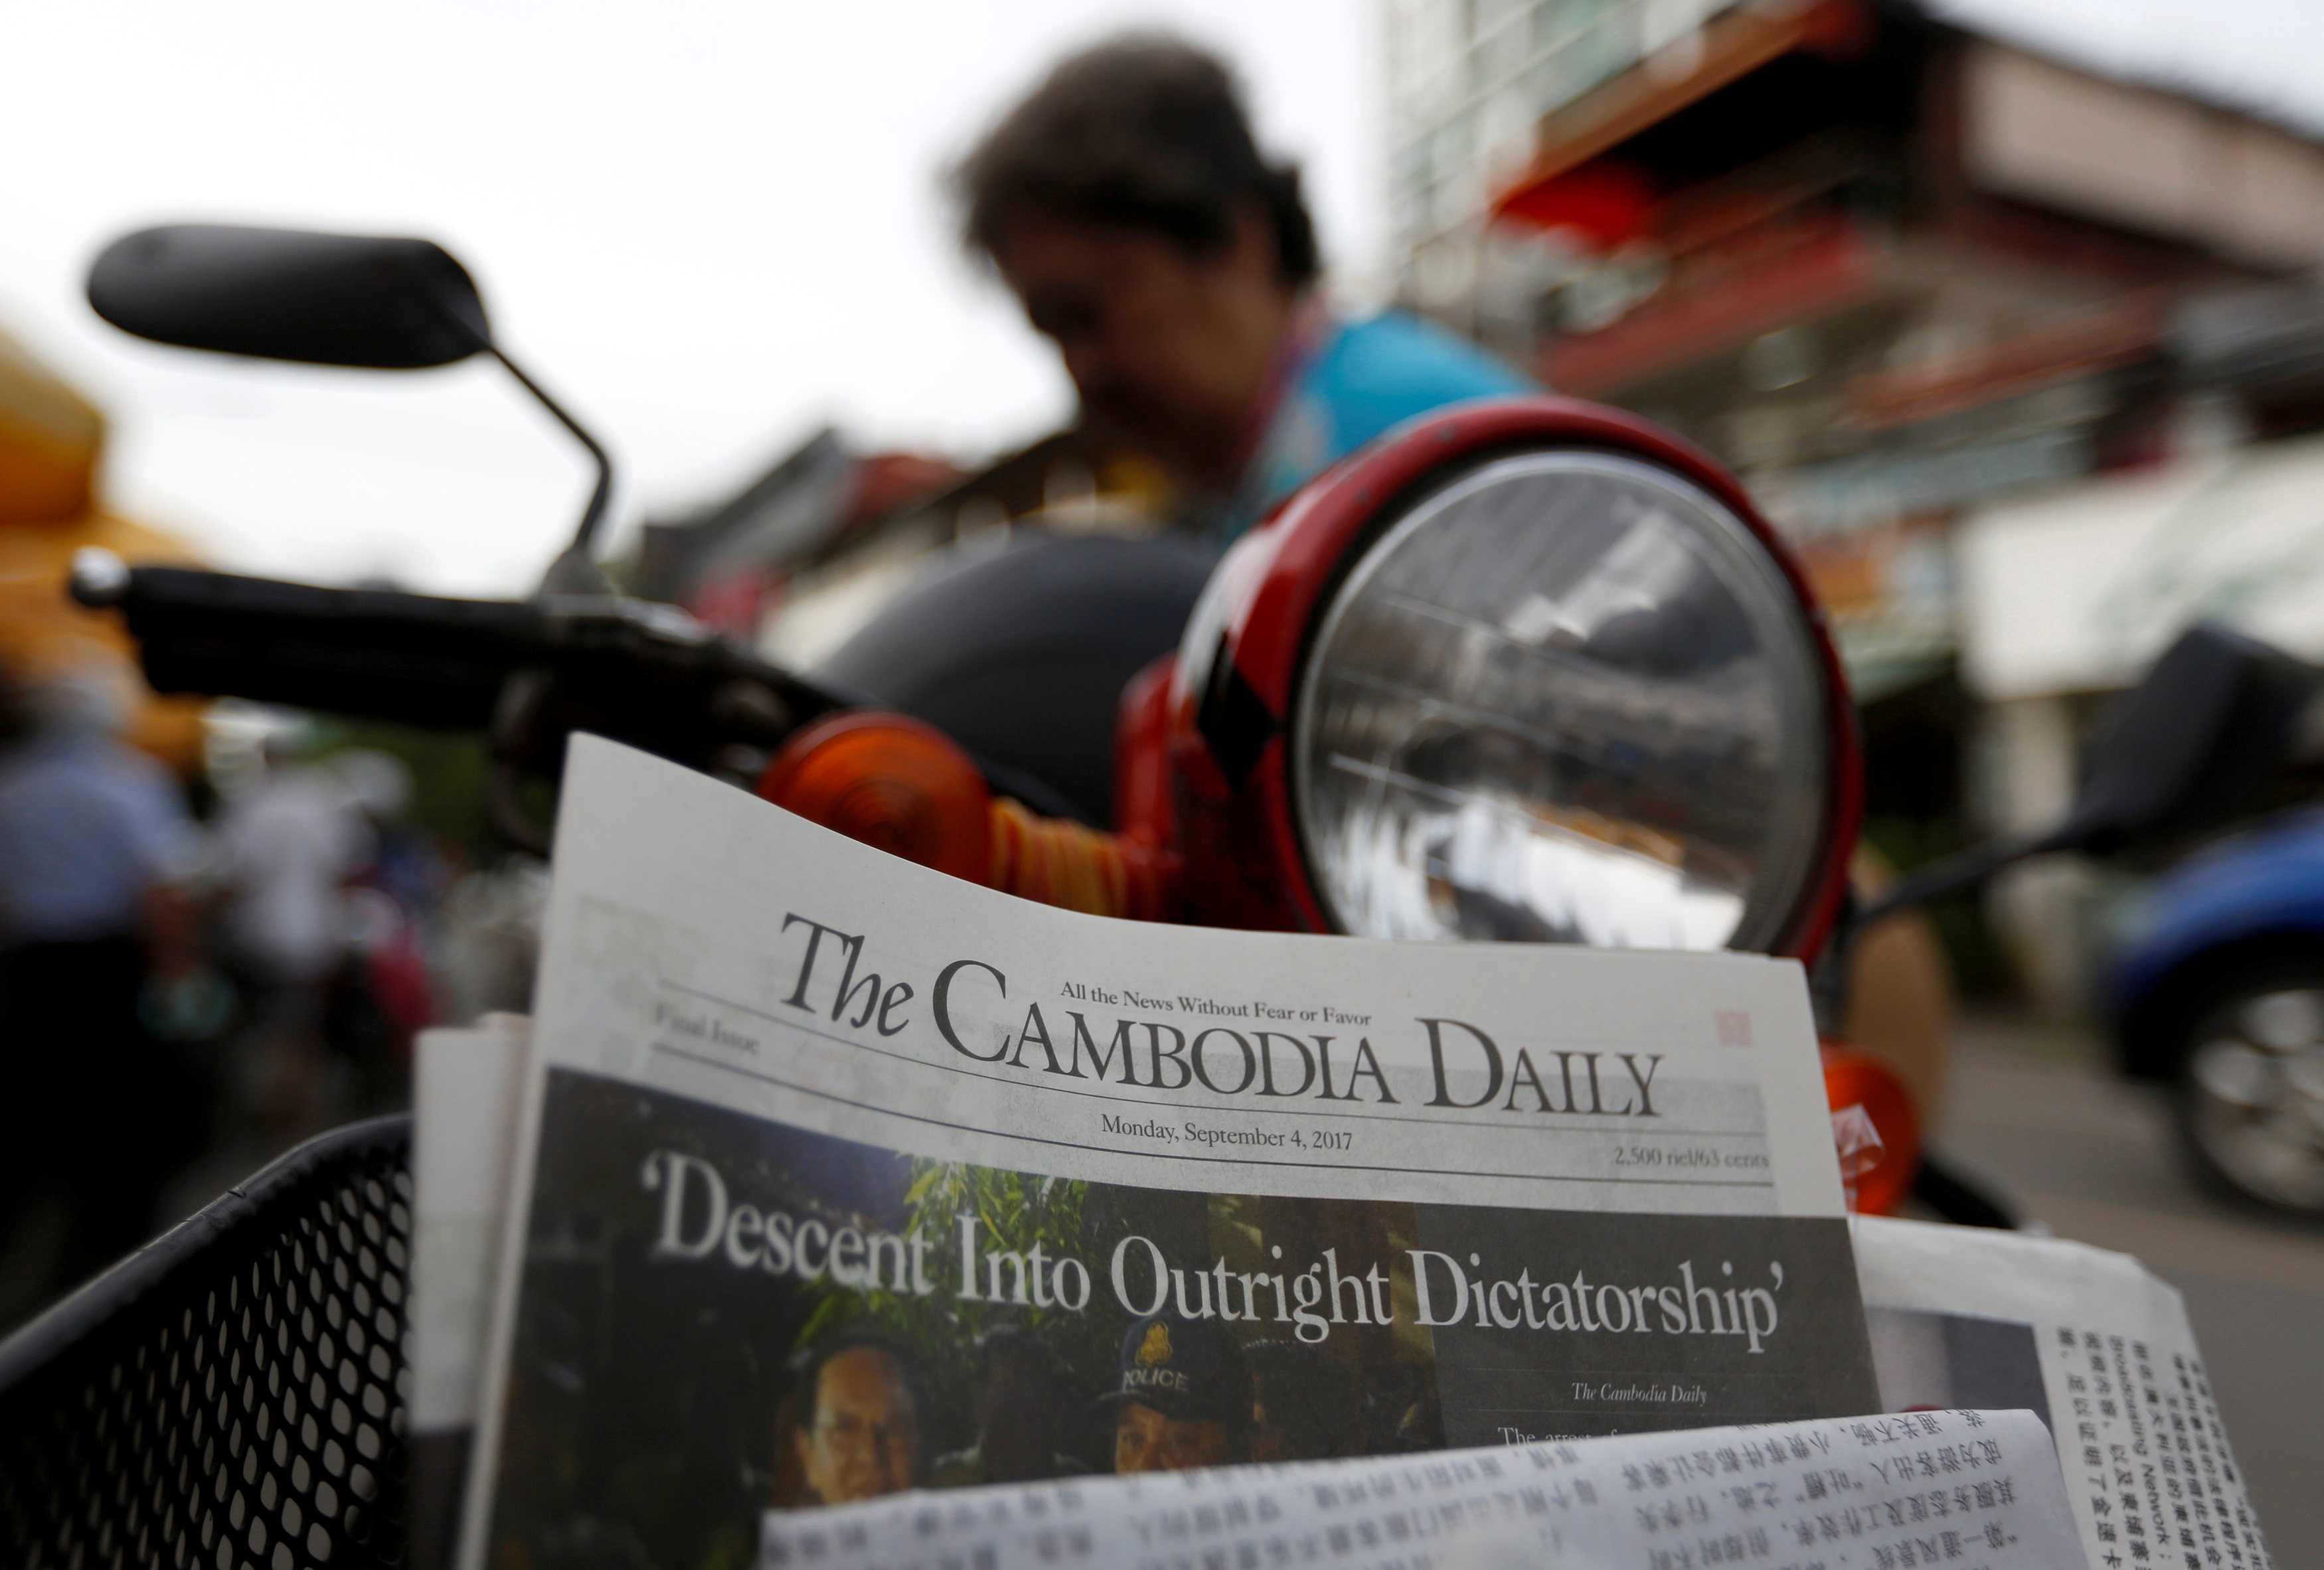 FILE - A woman buys the final issue of The Cambodia Daily newspaper at a store along a street in Phnom Penh, Cambodia, Sept. 4, 2017.